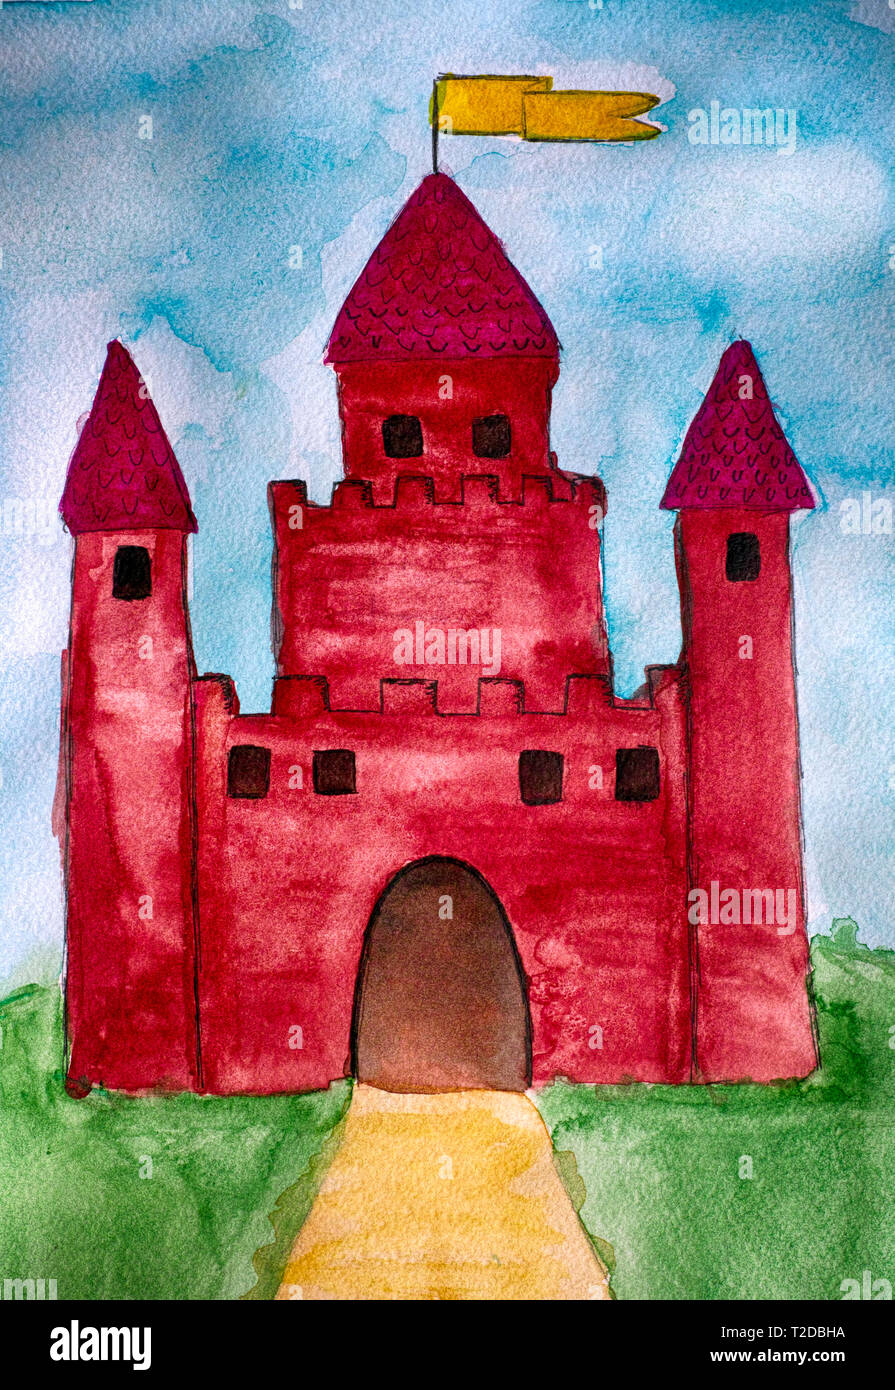 Castle. Watercolour child hand drawing. Close-up. - Stock Image